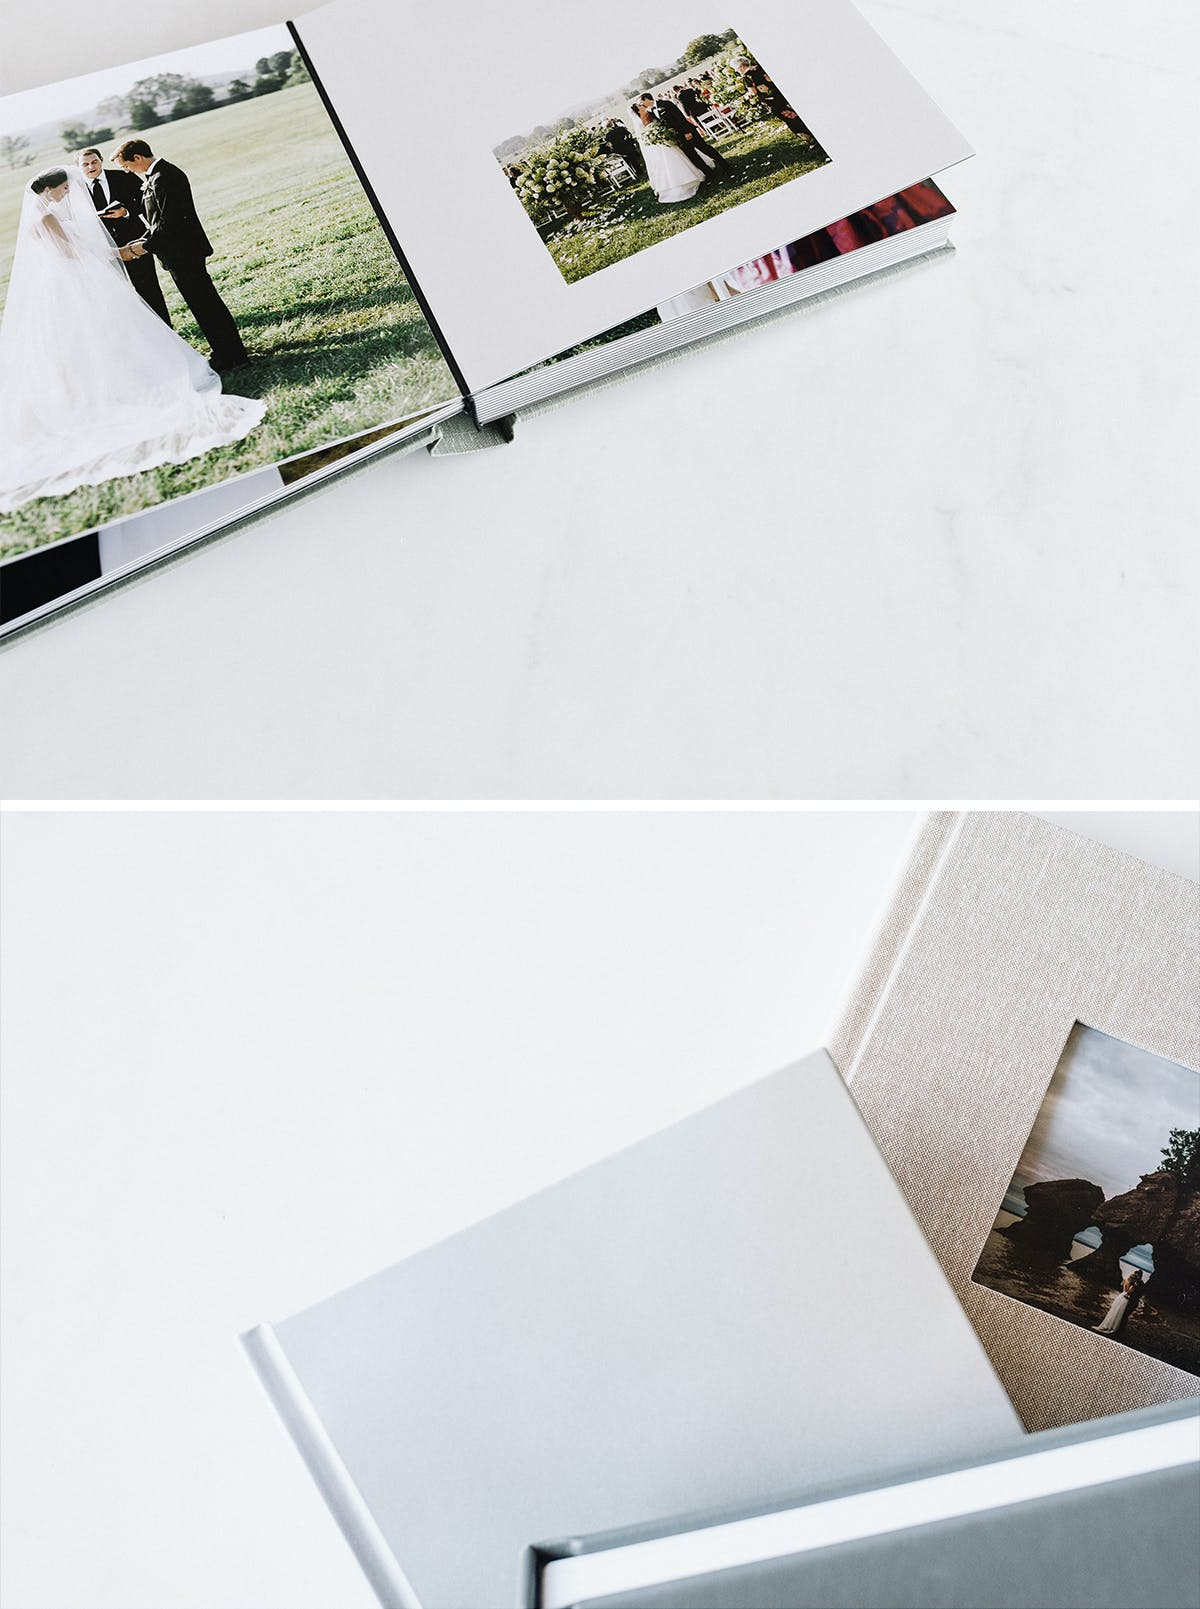 Sample photo album to increase album and print sales as a photography business